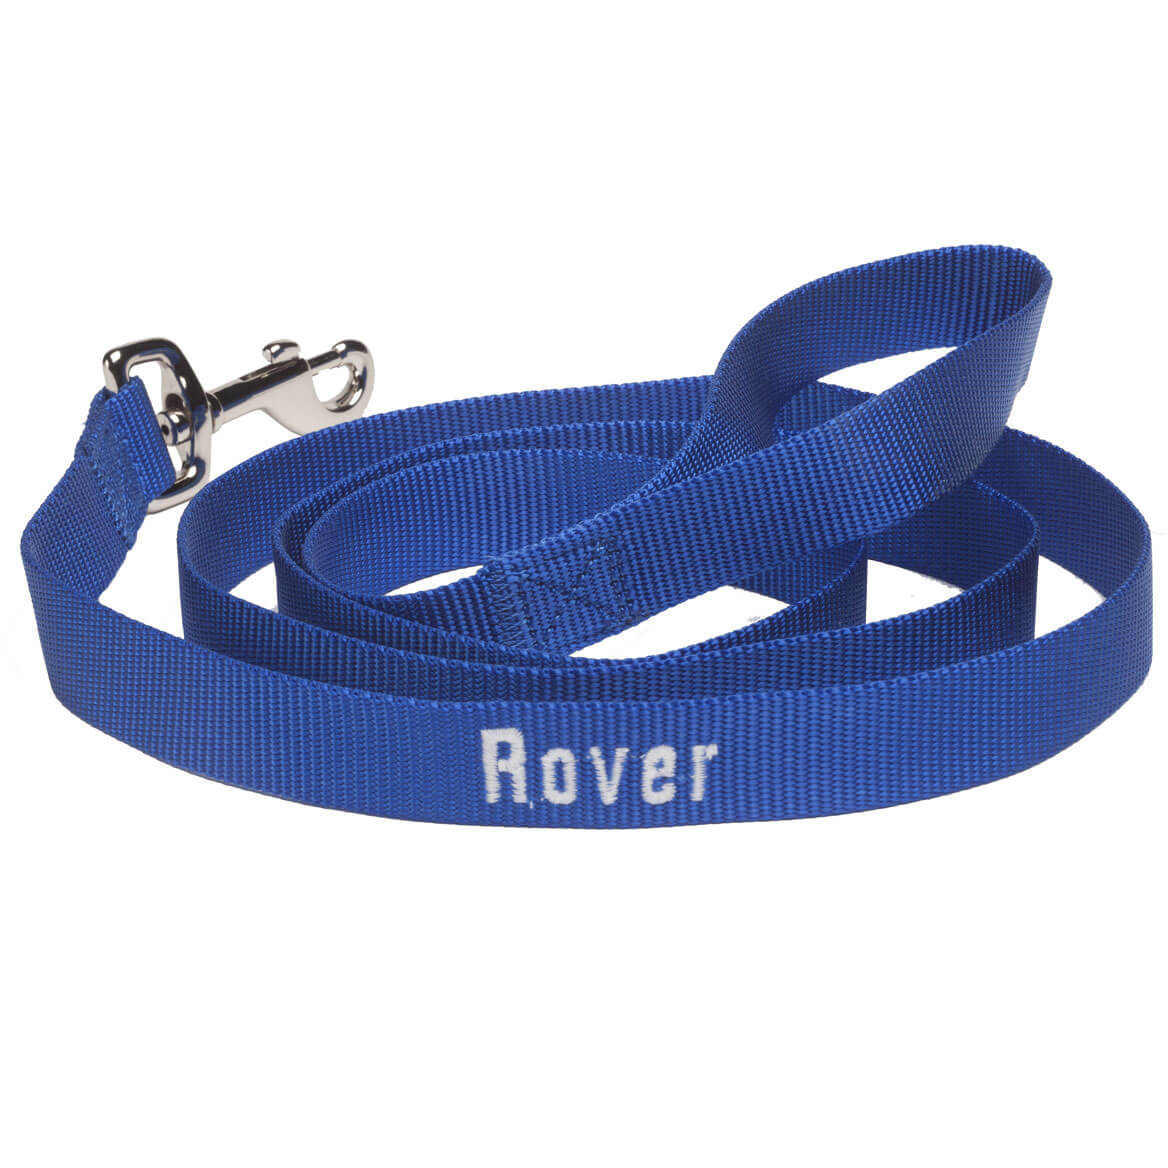 "Personalized 6' x 1"" Leash"